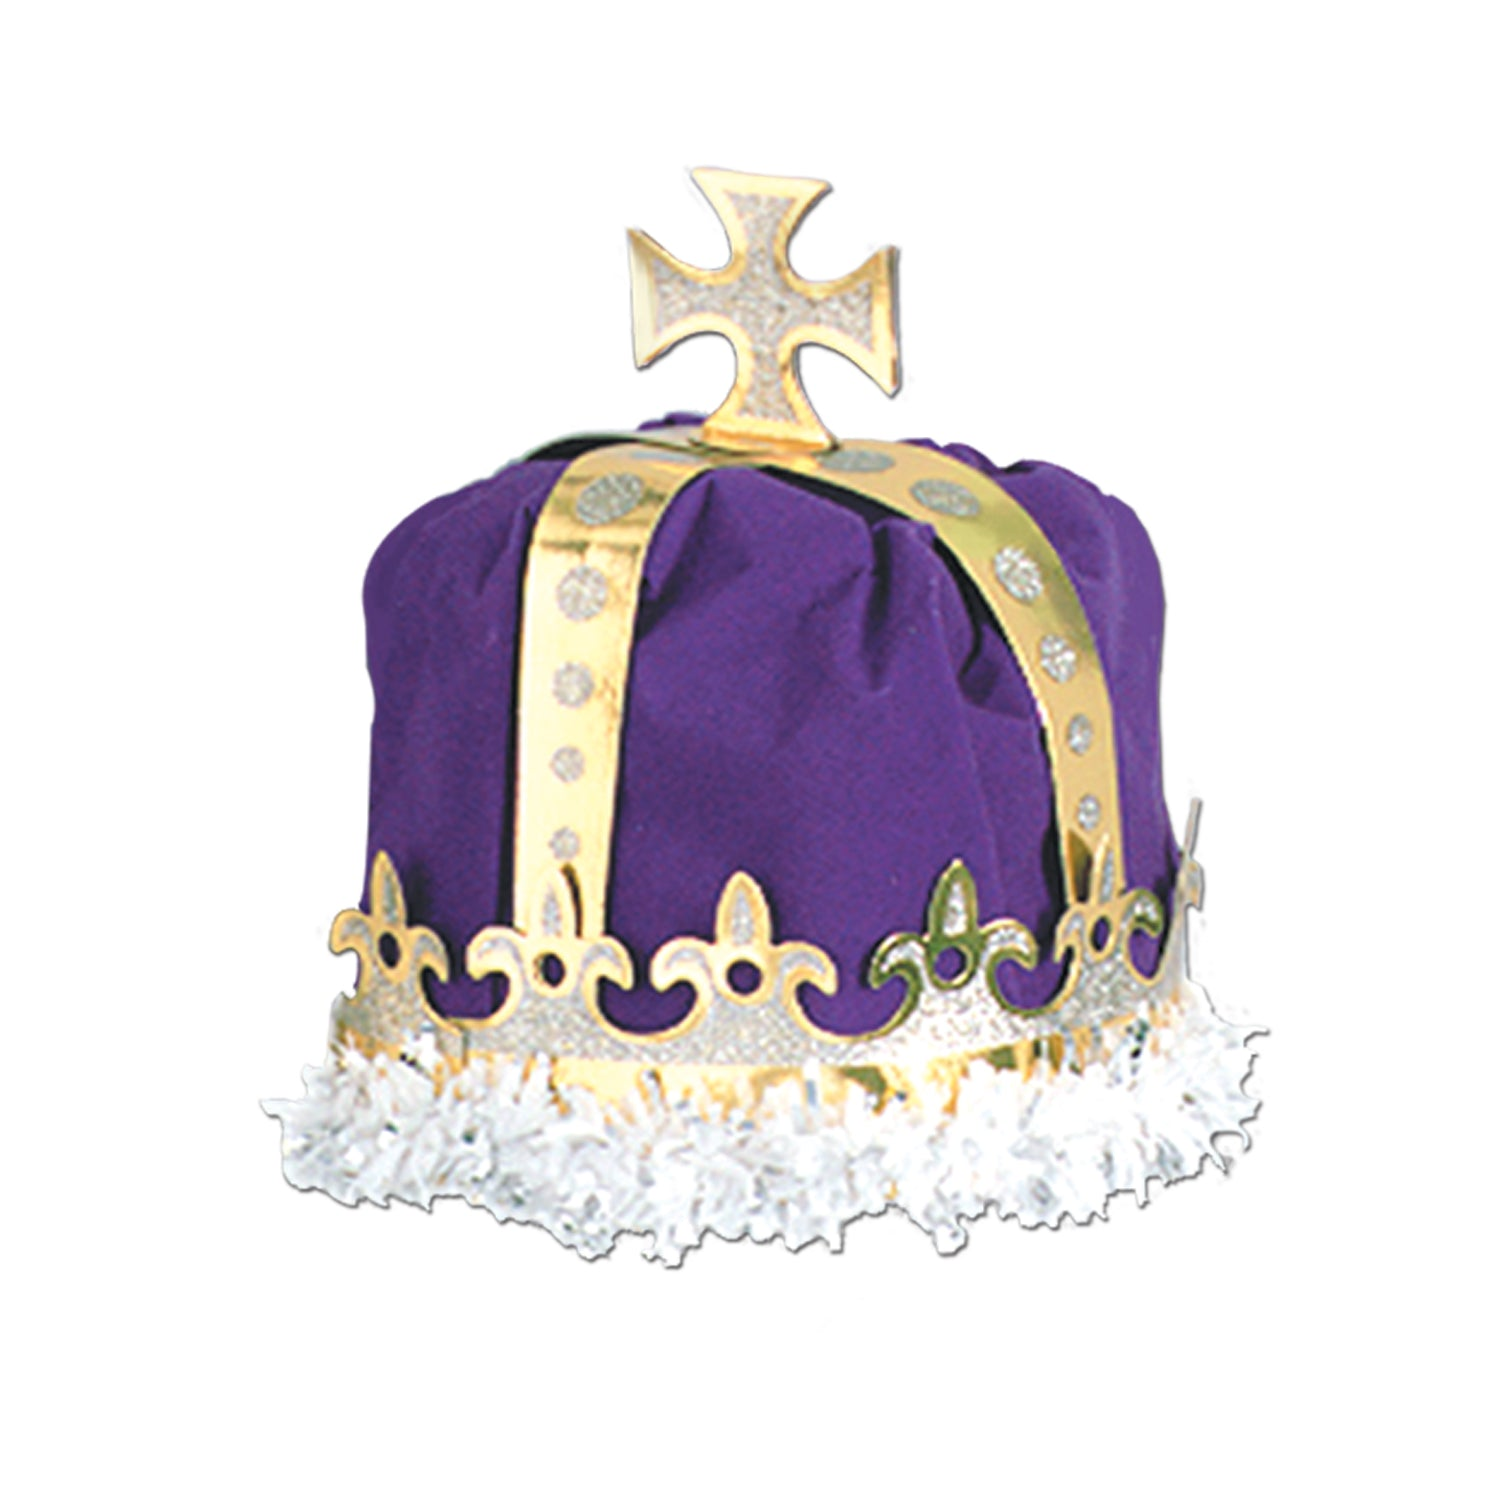 Royal King's Crown, purple; velvet-textured by Beistle - Mardi Gras Theme Decorations